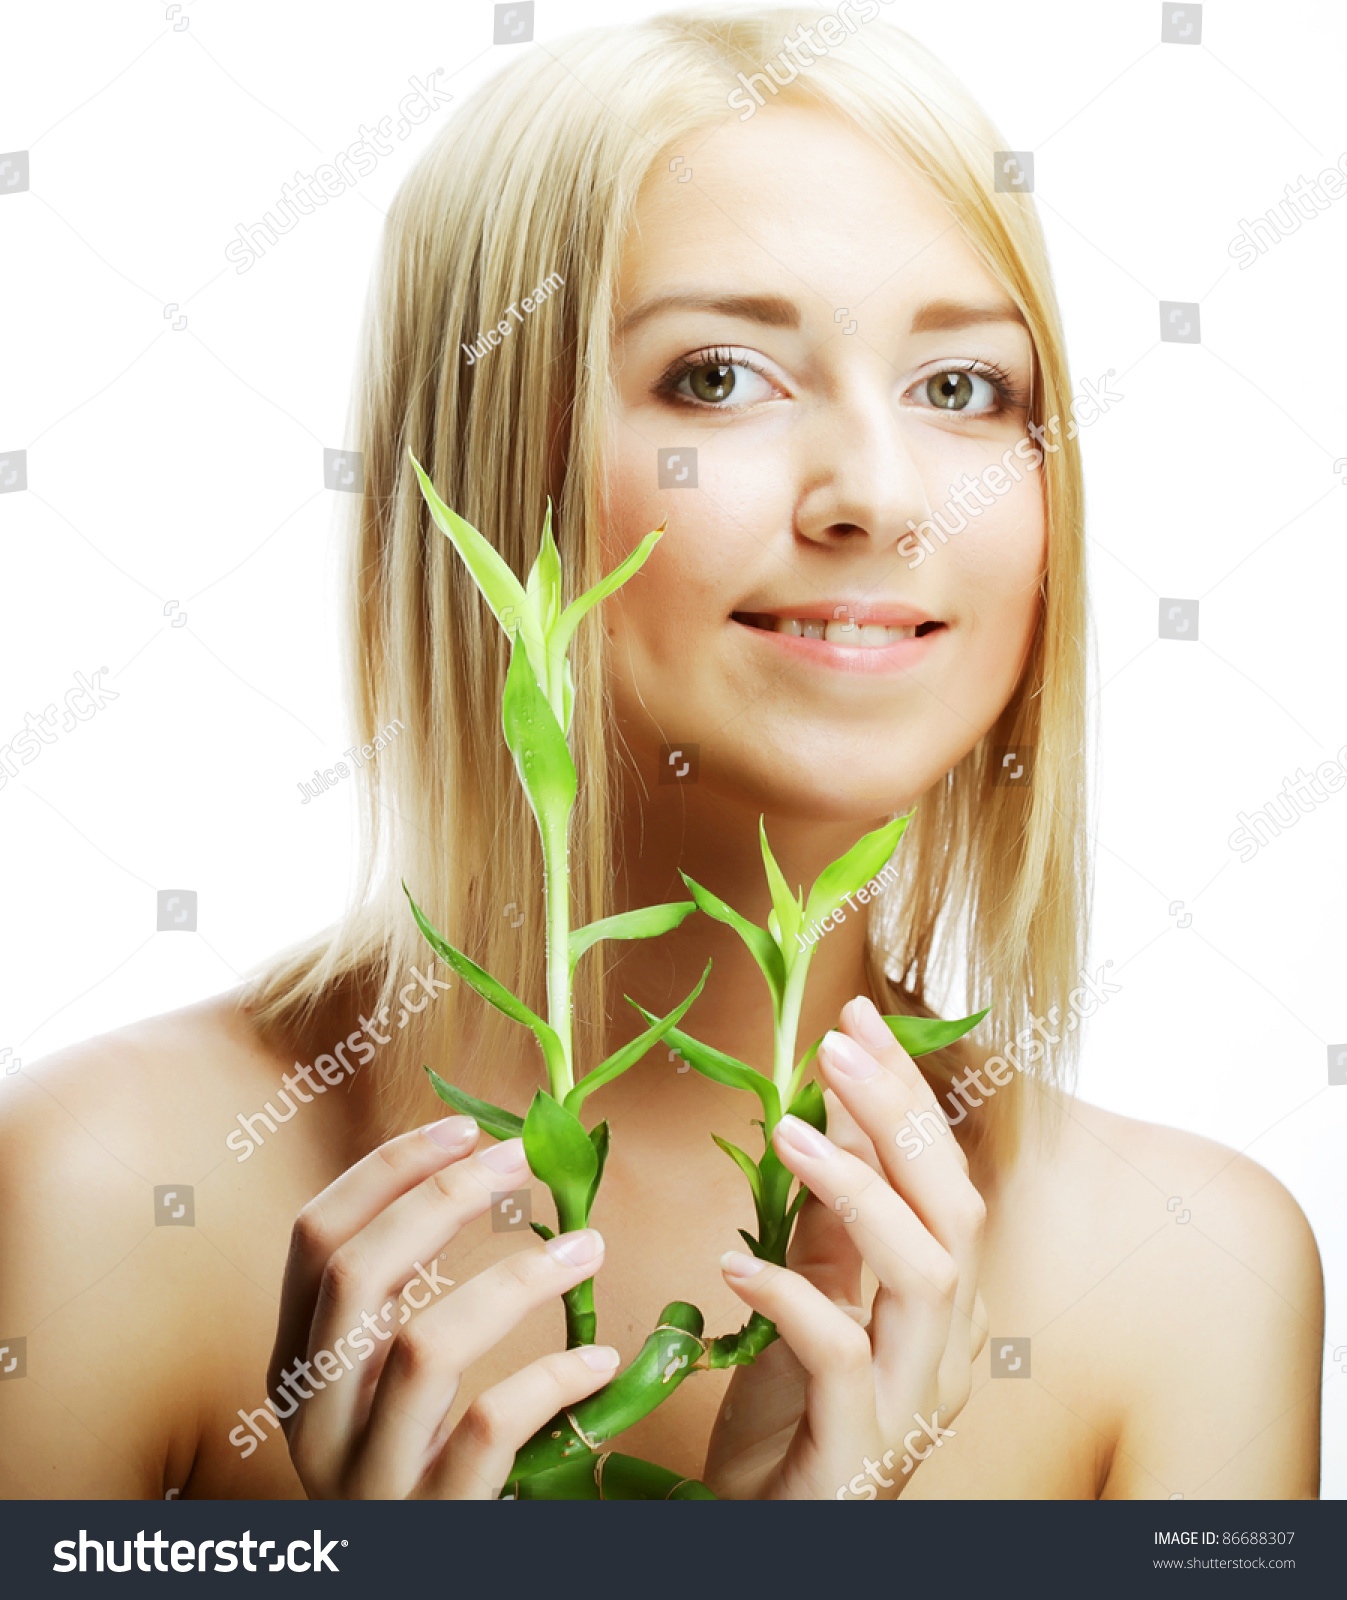 Spa young woman bamboo stock photo 86688307 shutterstock for Salon younga